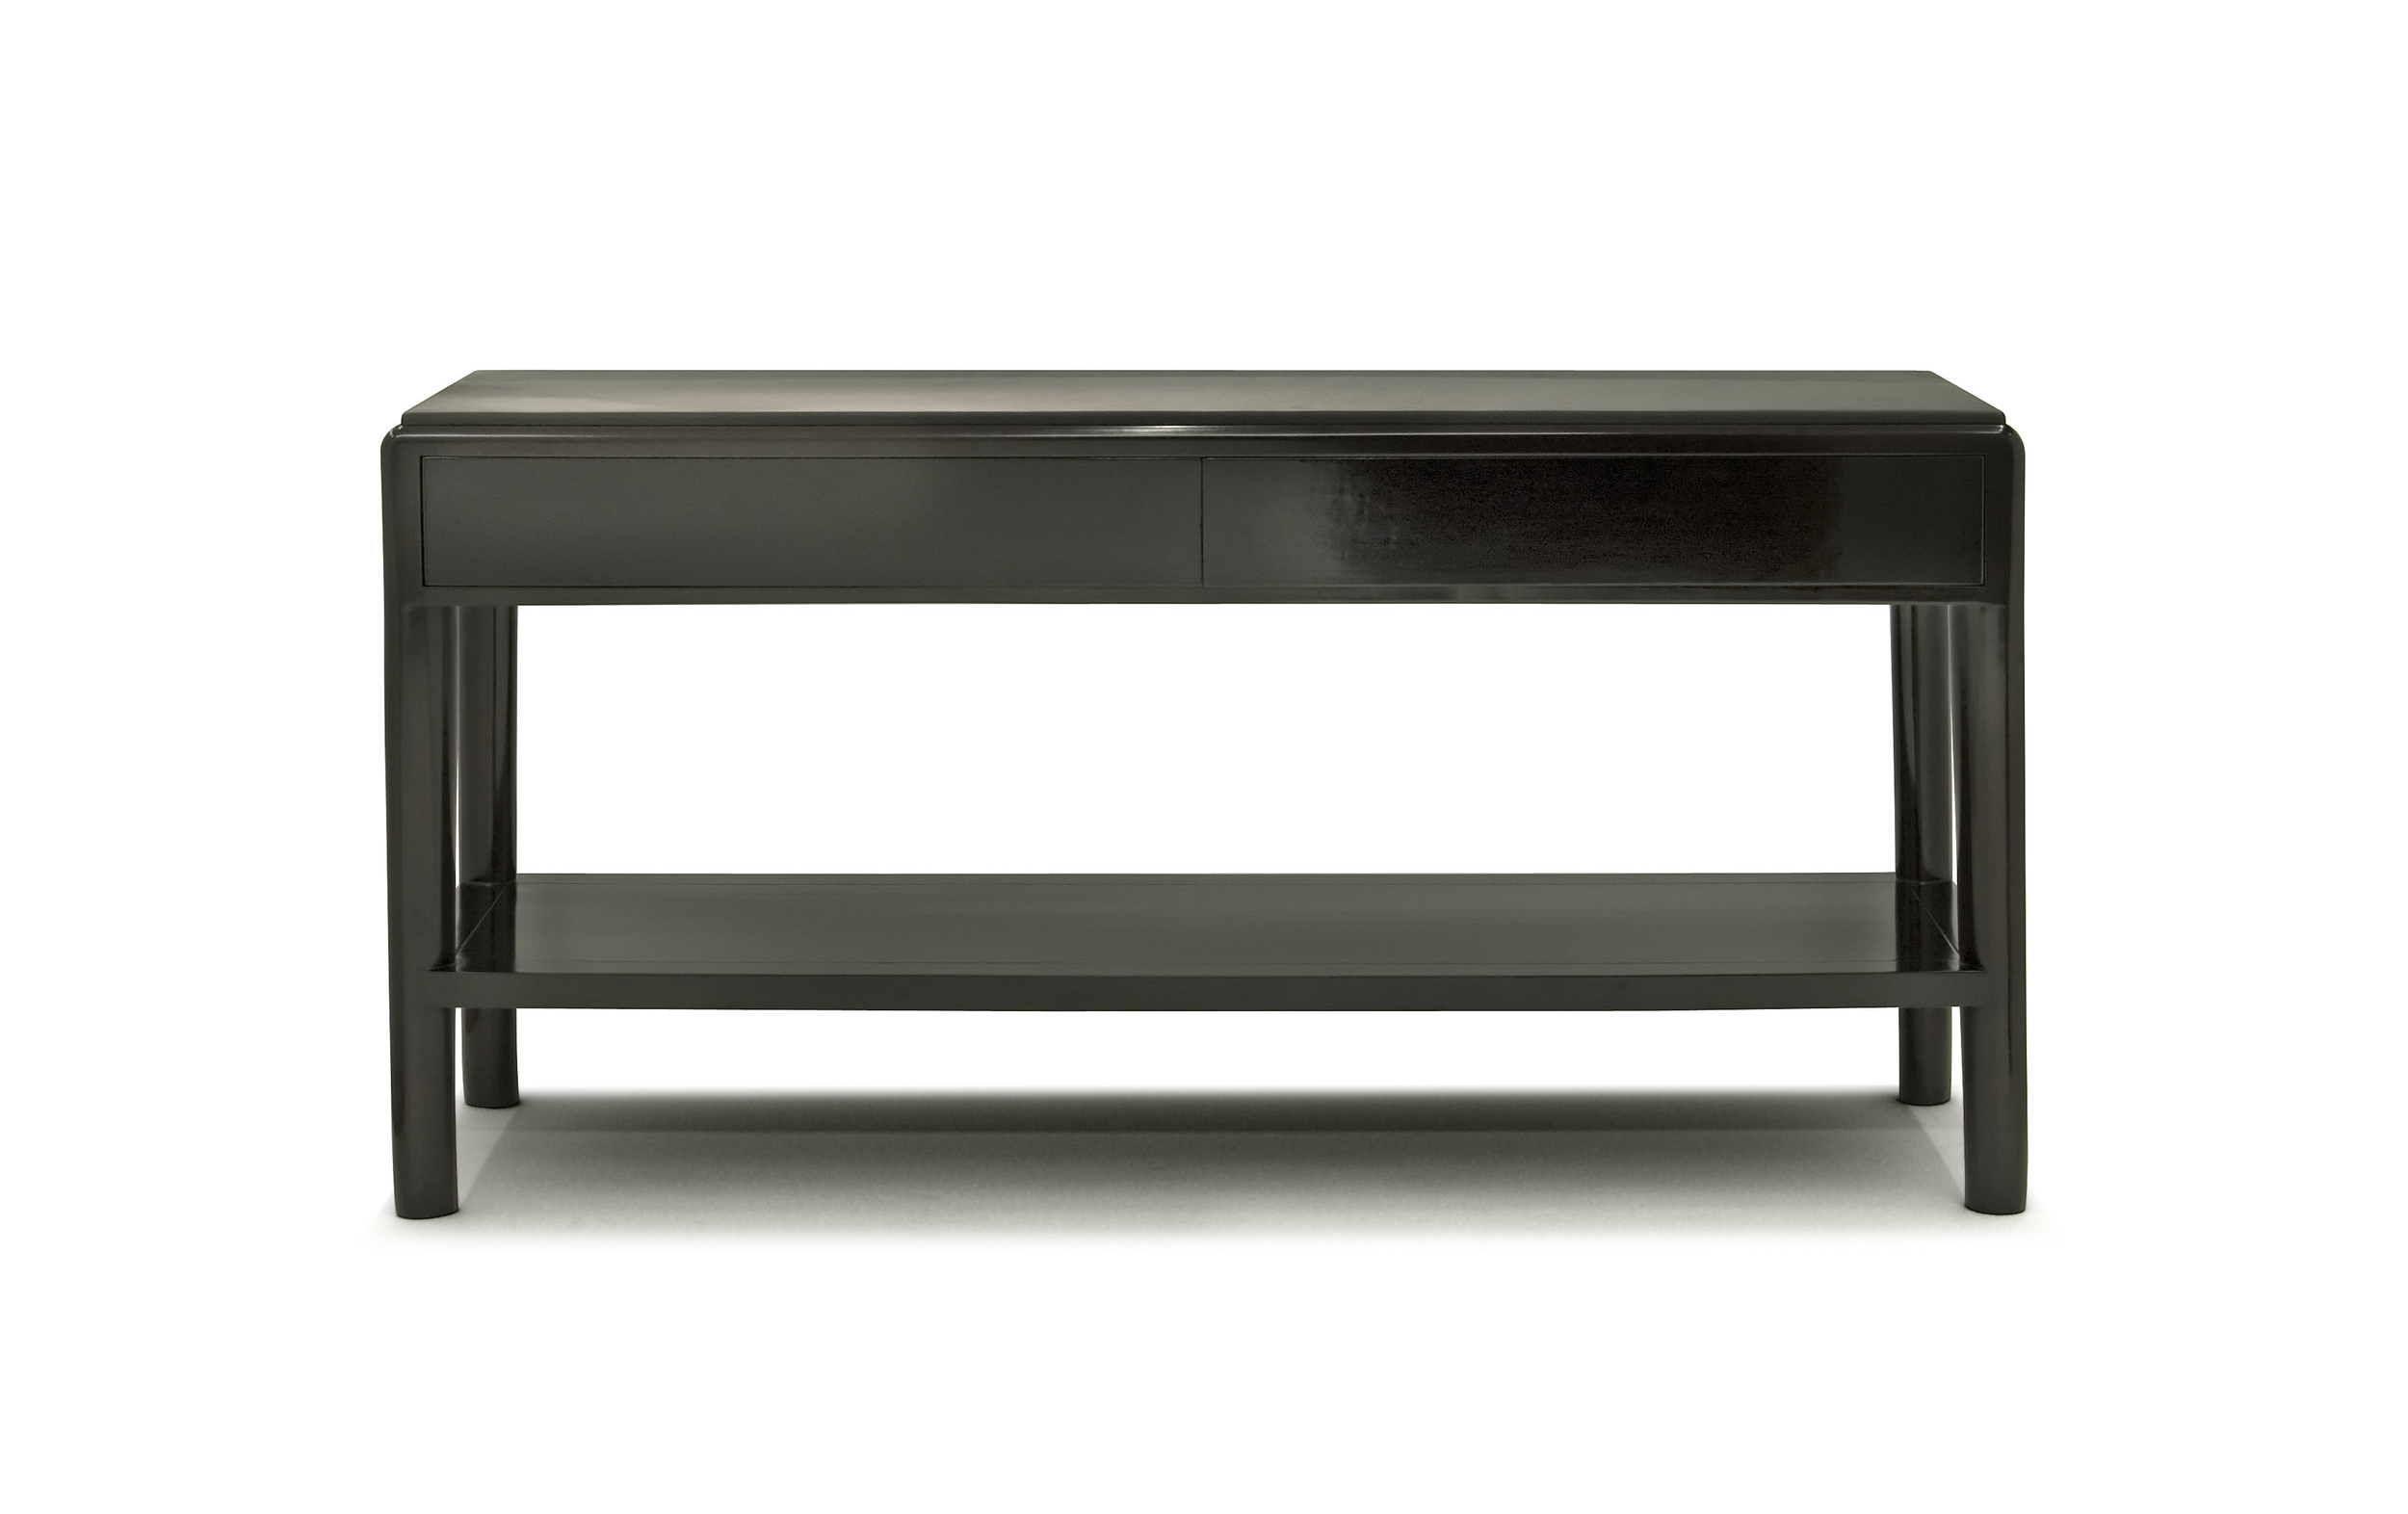 ....Bespoke Modern furniture : Side Table..特别定制现代家具: 边台....